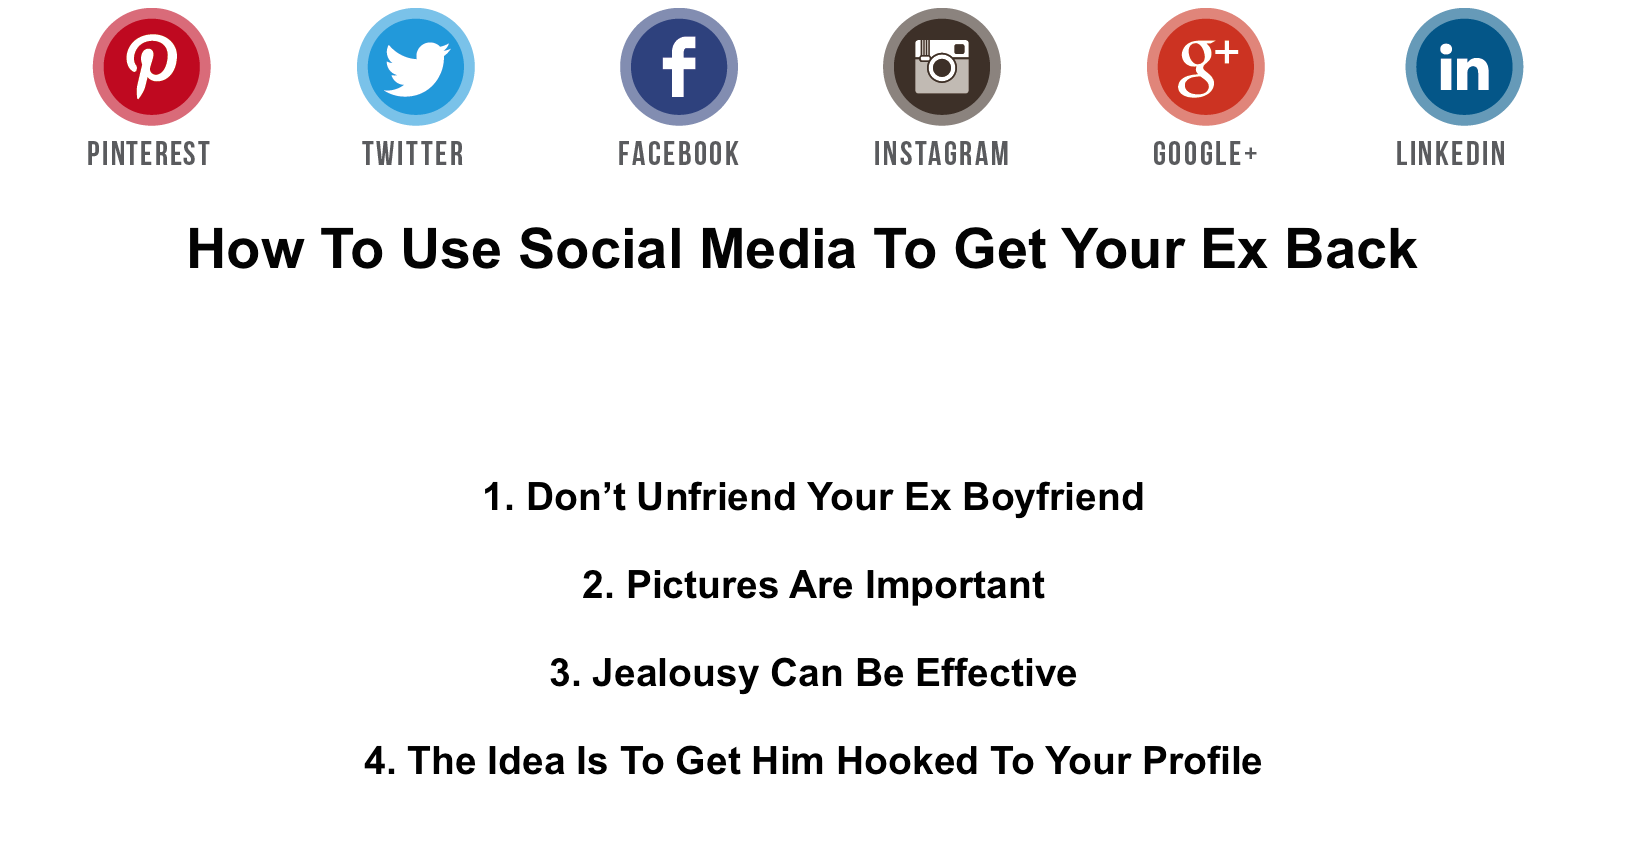 Make your ex jealous on social media